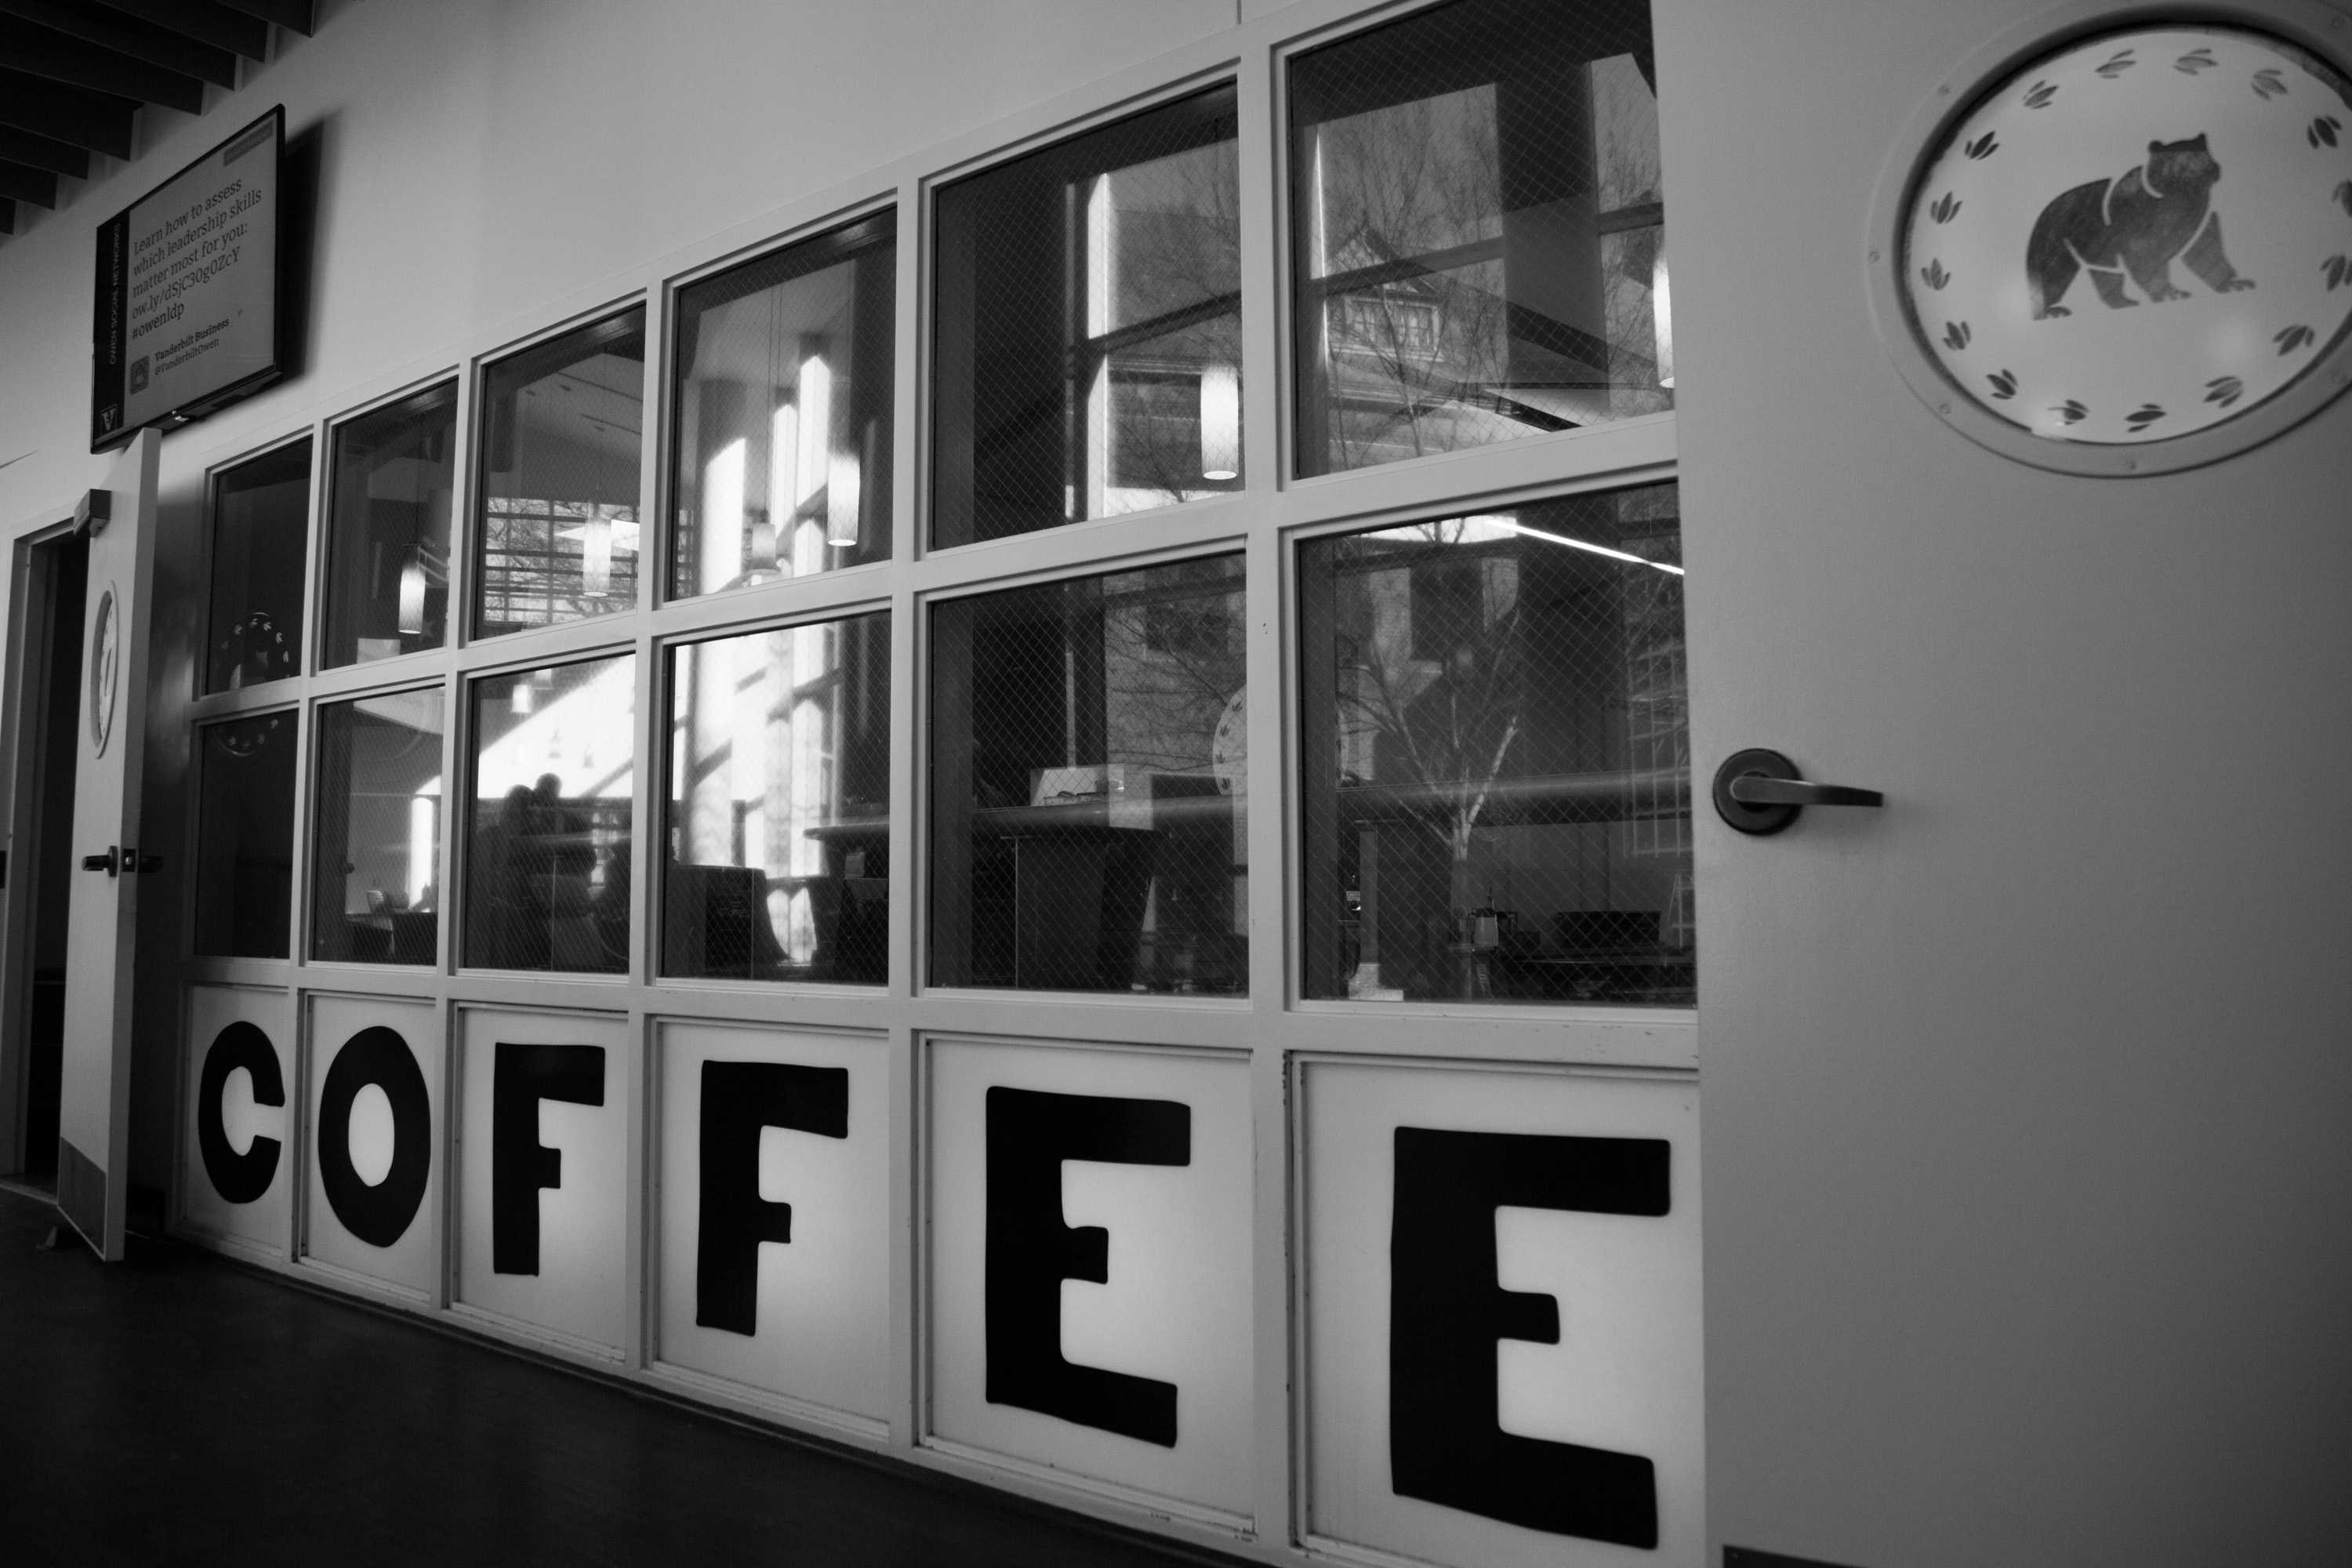 Owen's new coffee shop, taken on Friday, January 19, 2018. (Photo by Claire Barnett // The Vanderbilt Hustler)